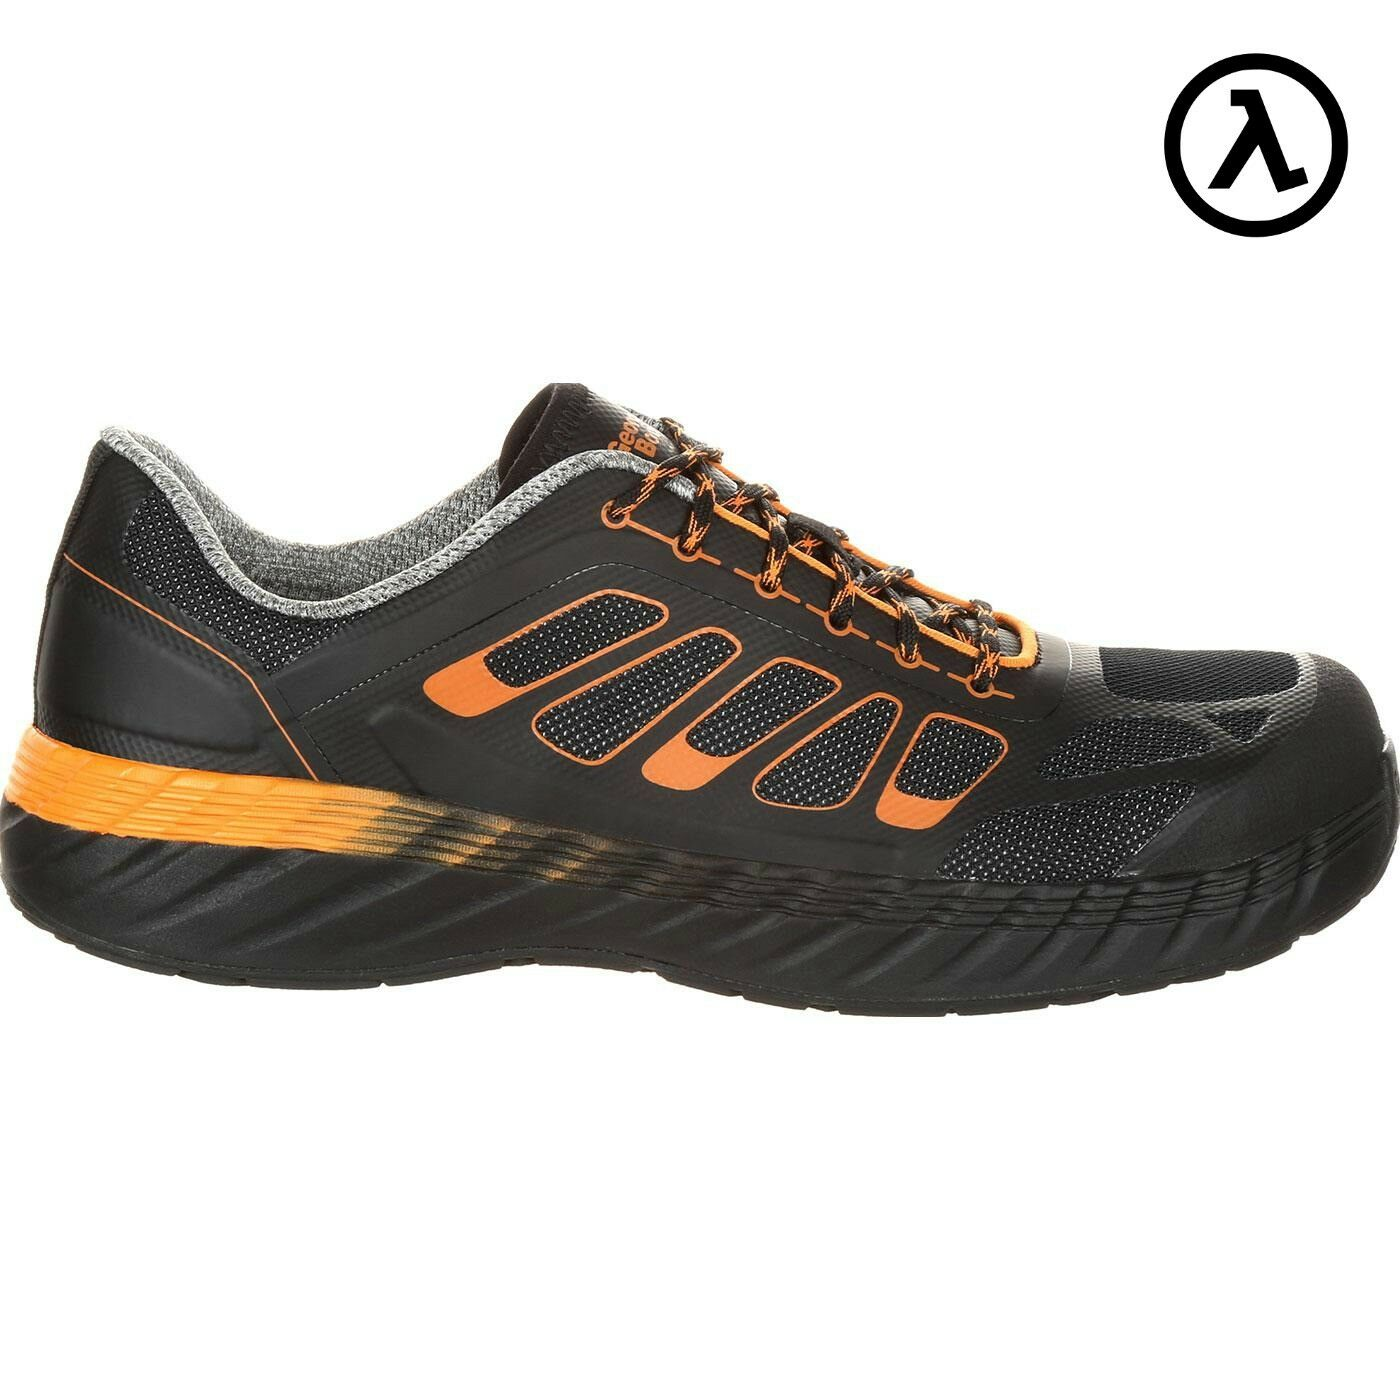 GEORGIA BOOT REFLX ALLOY TOE WORK ATHLETIC SHOES GB00219 - ALL SIZES - NEW